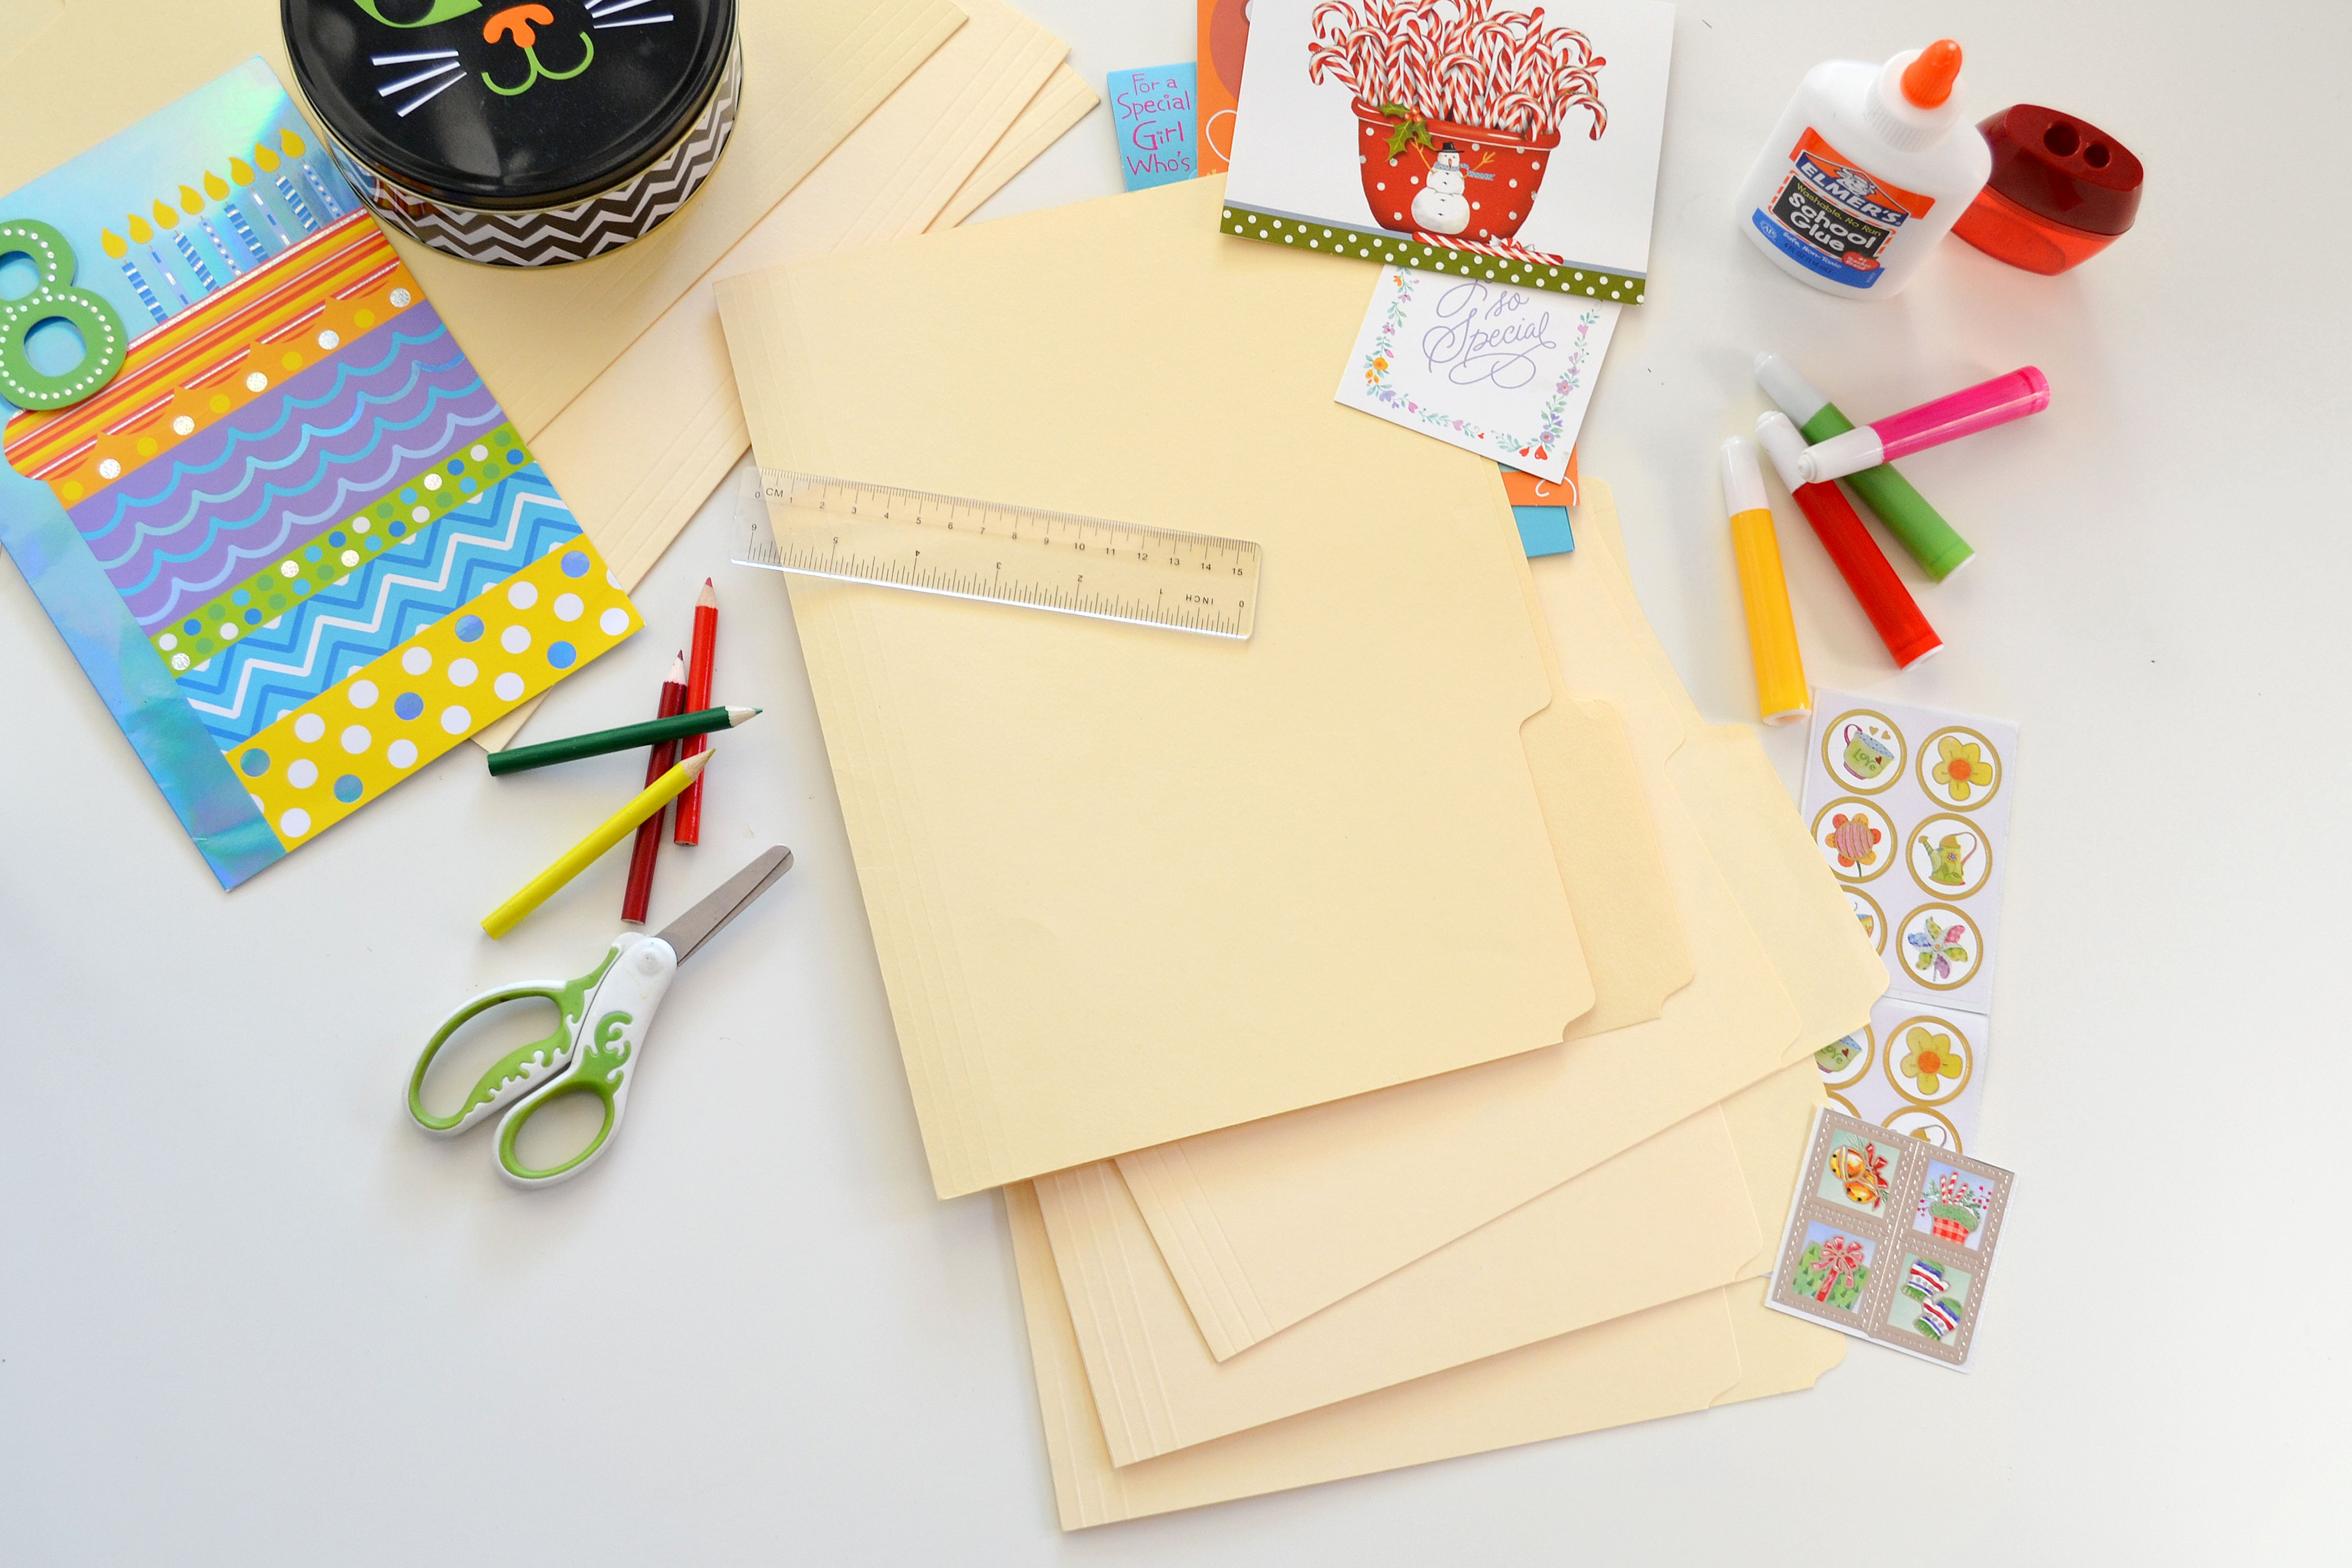 How To Decorate File Folders Decor File Folder Homework Desk